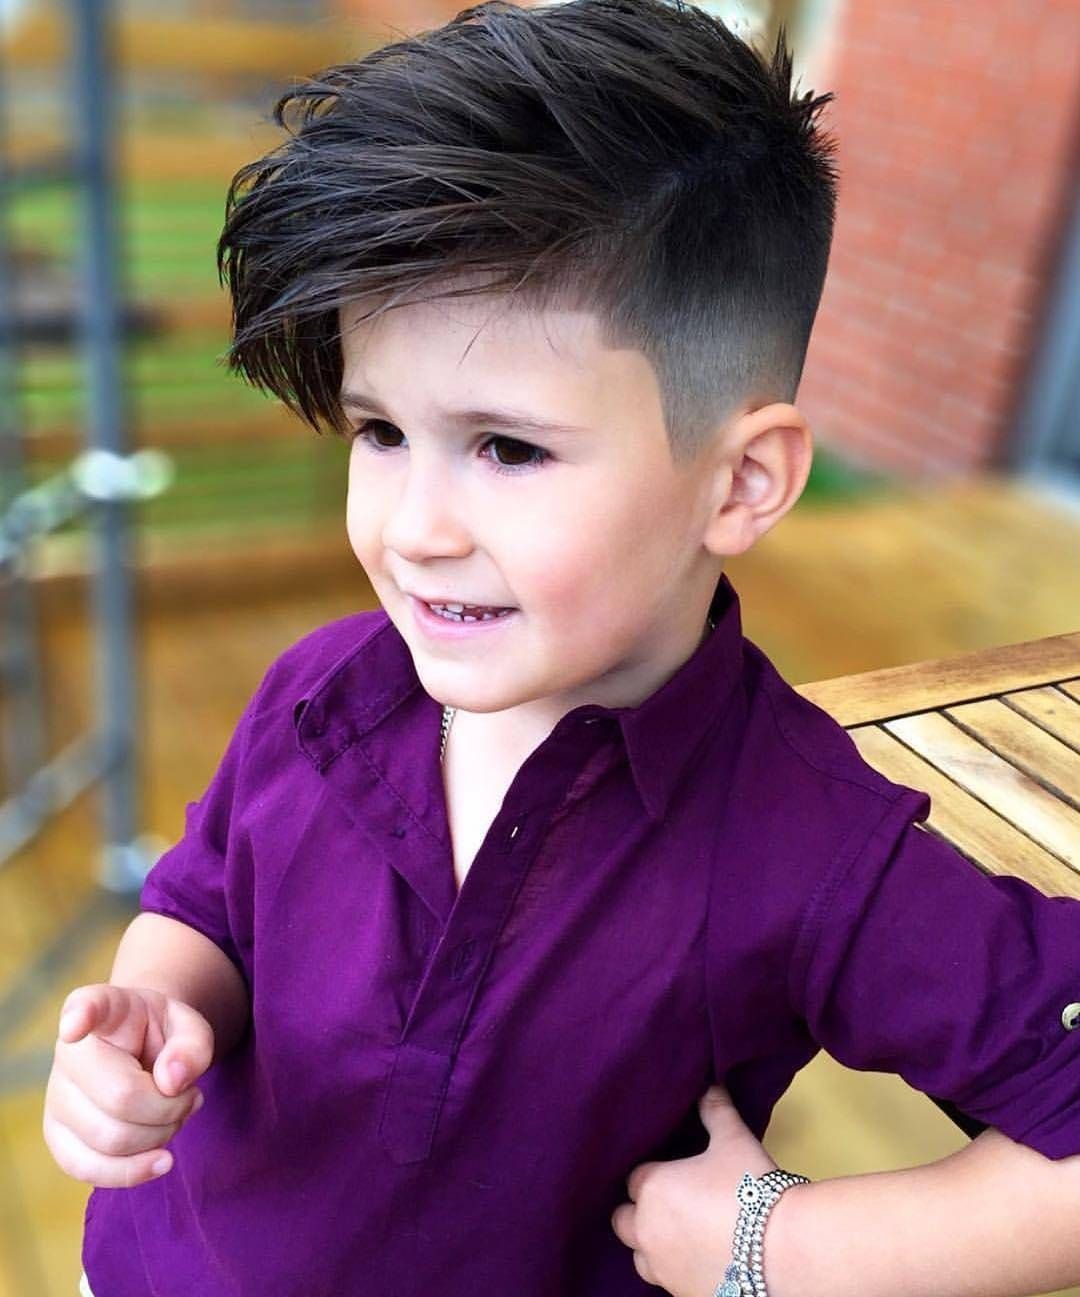 Boy hairstyle long menus hair haircuts fade haircuts short medium long buzzed